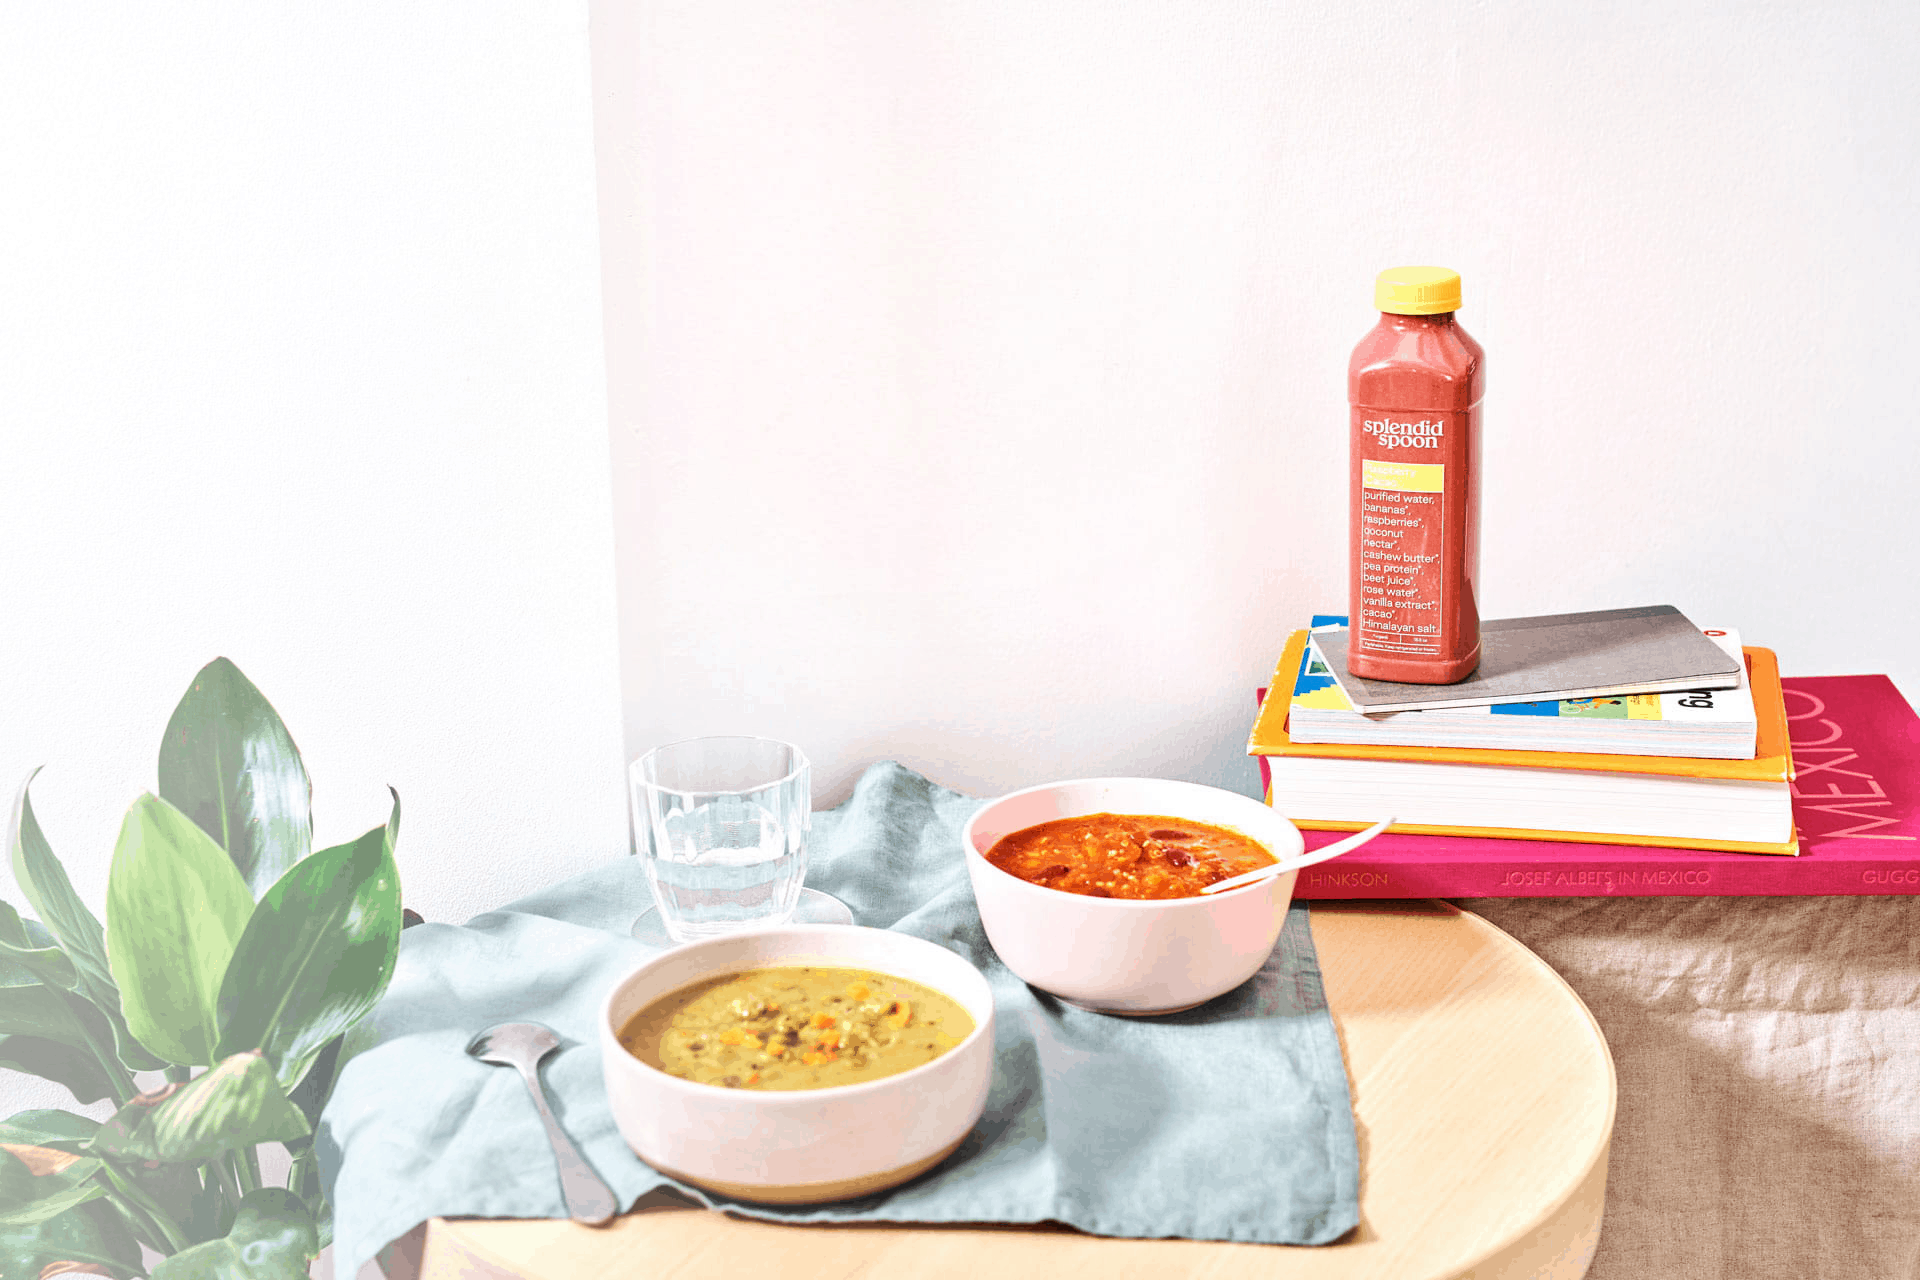 Splendid Spoon Plant-Based Meals Available Now!